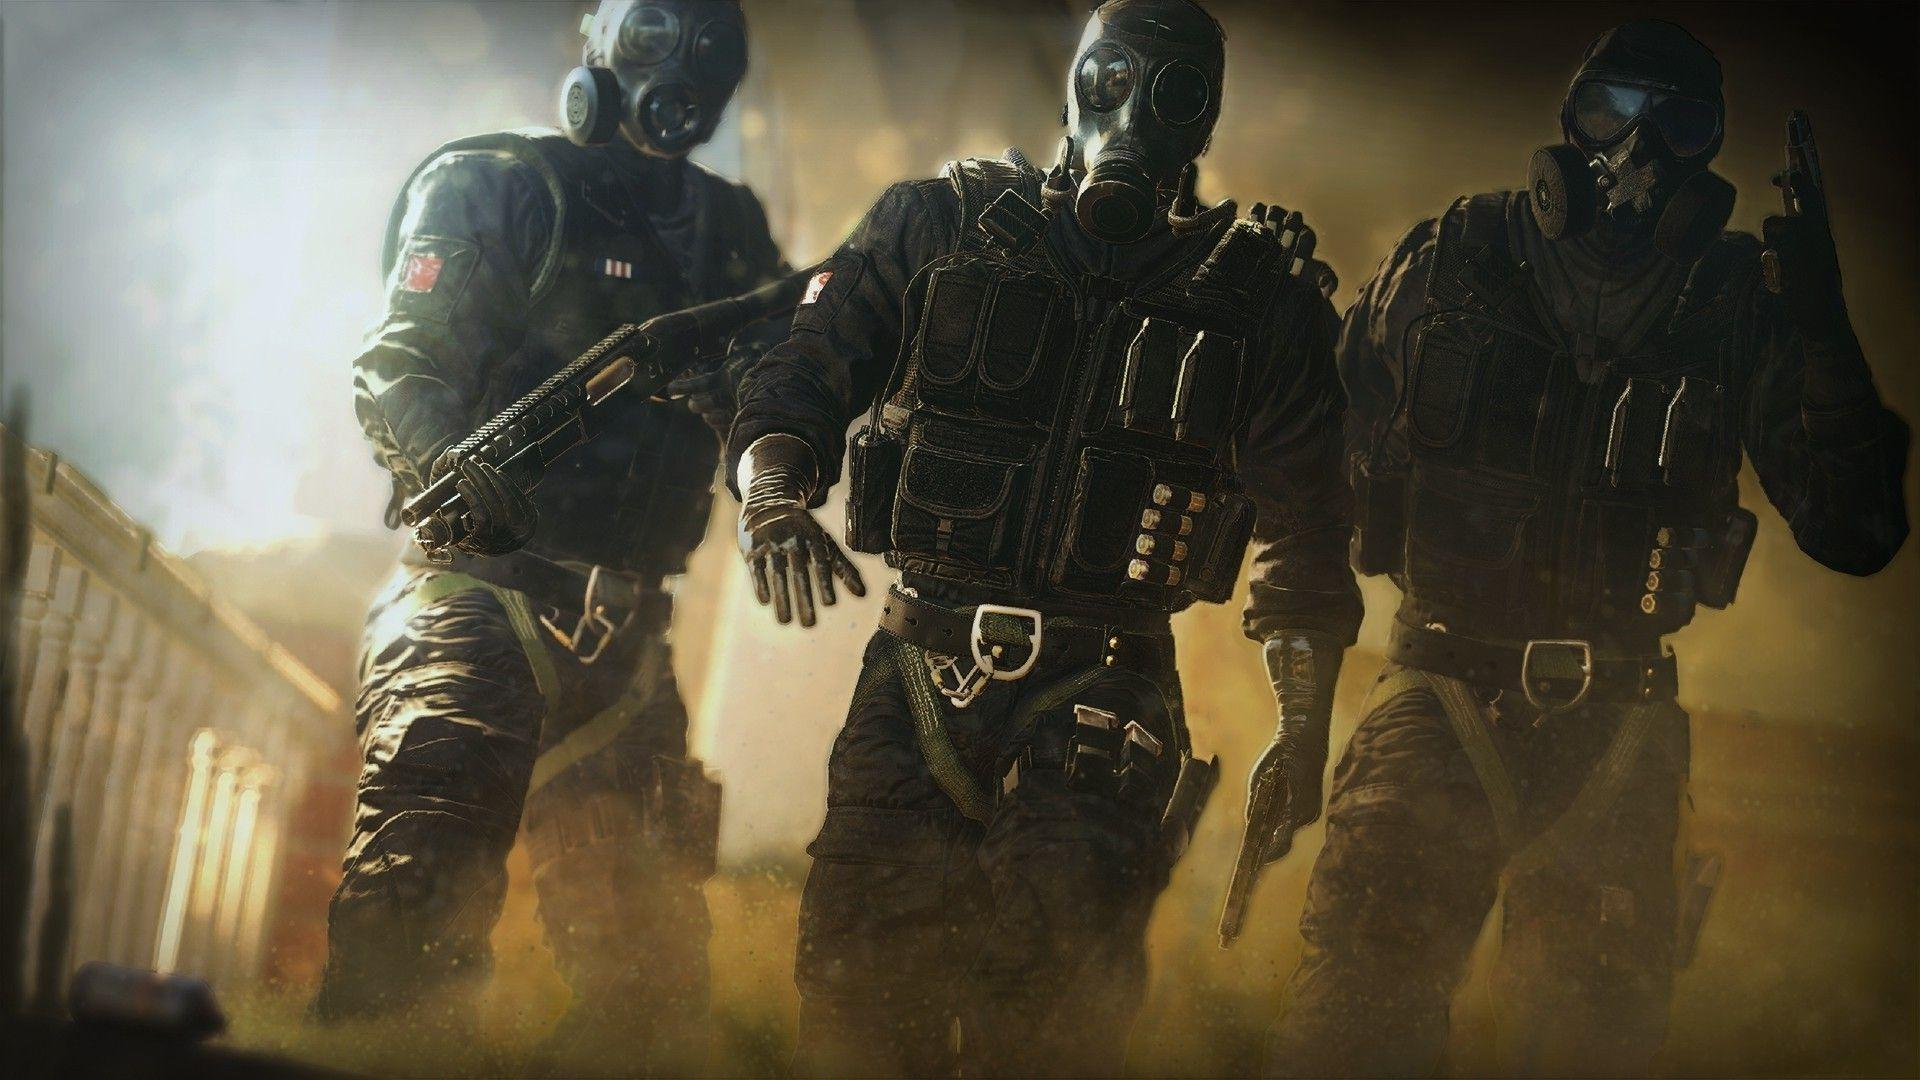 Rainbow Six Siege Wallpapers Hd Posted By Sarah Cunningham